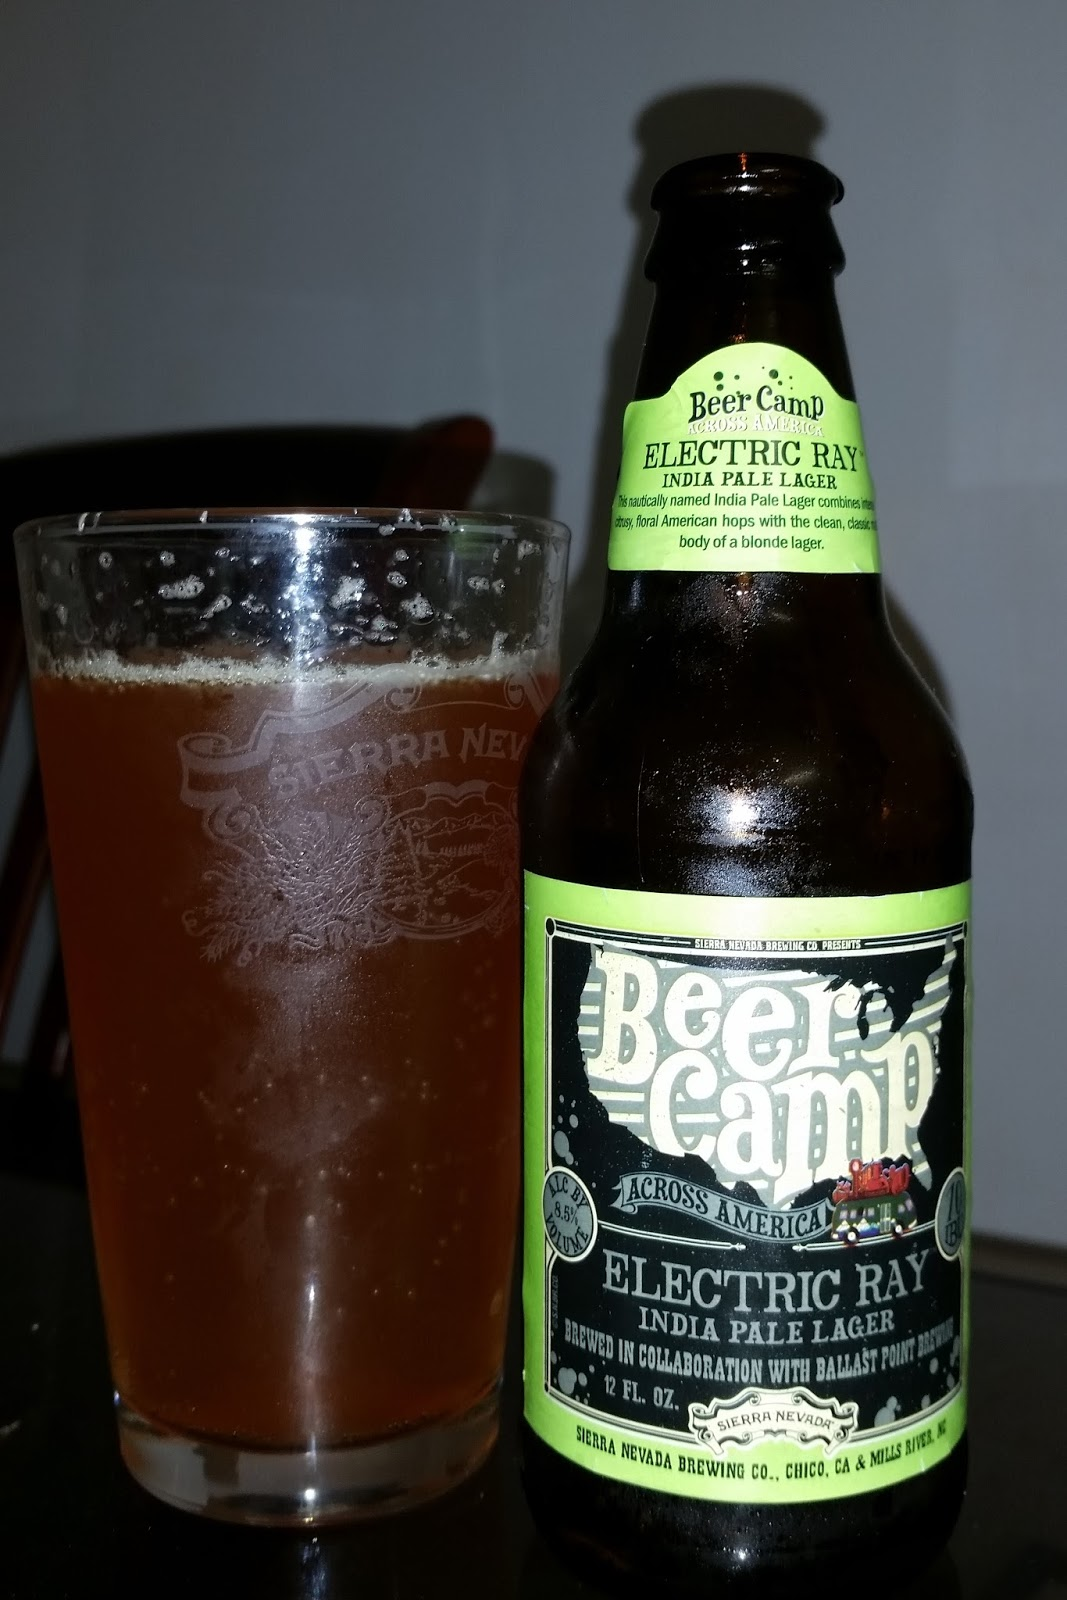 Sierra Nevada Beer Camp Electric Ray